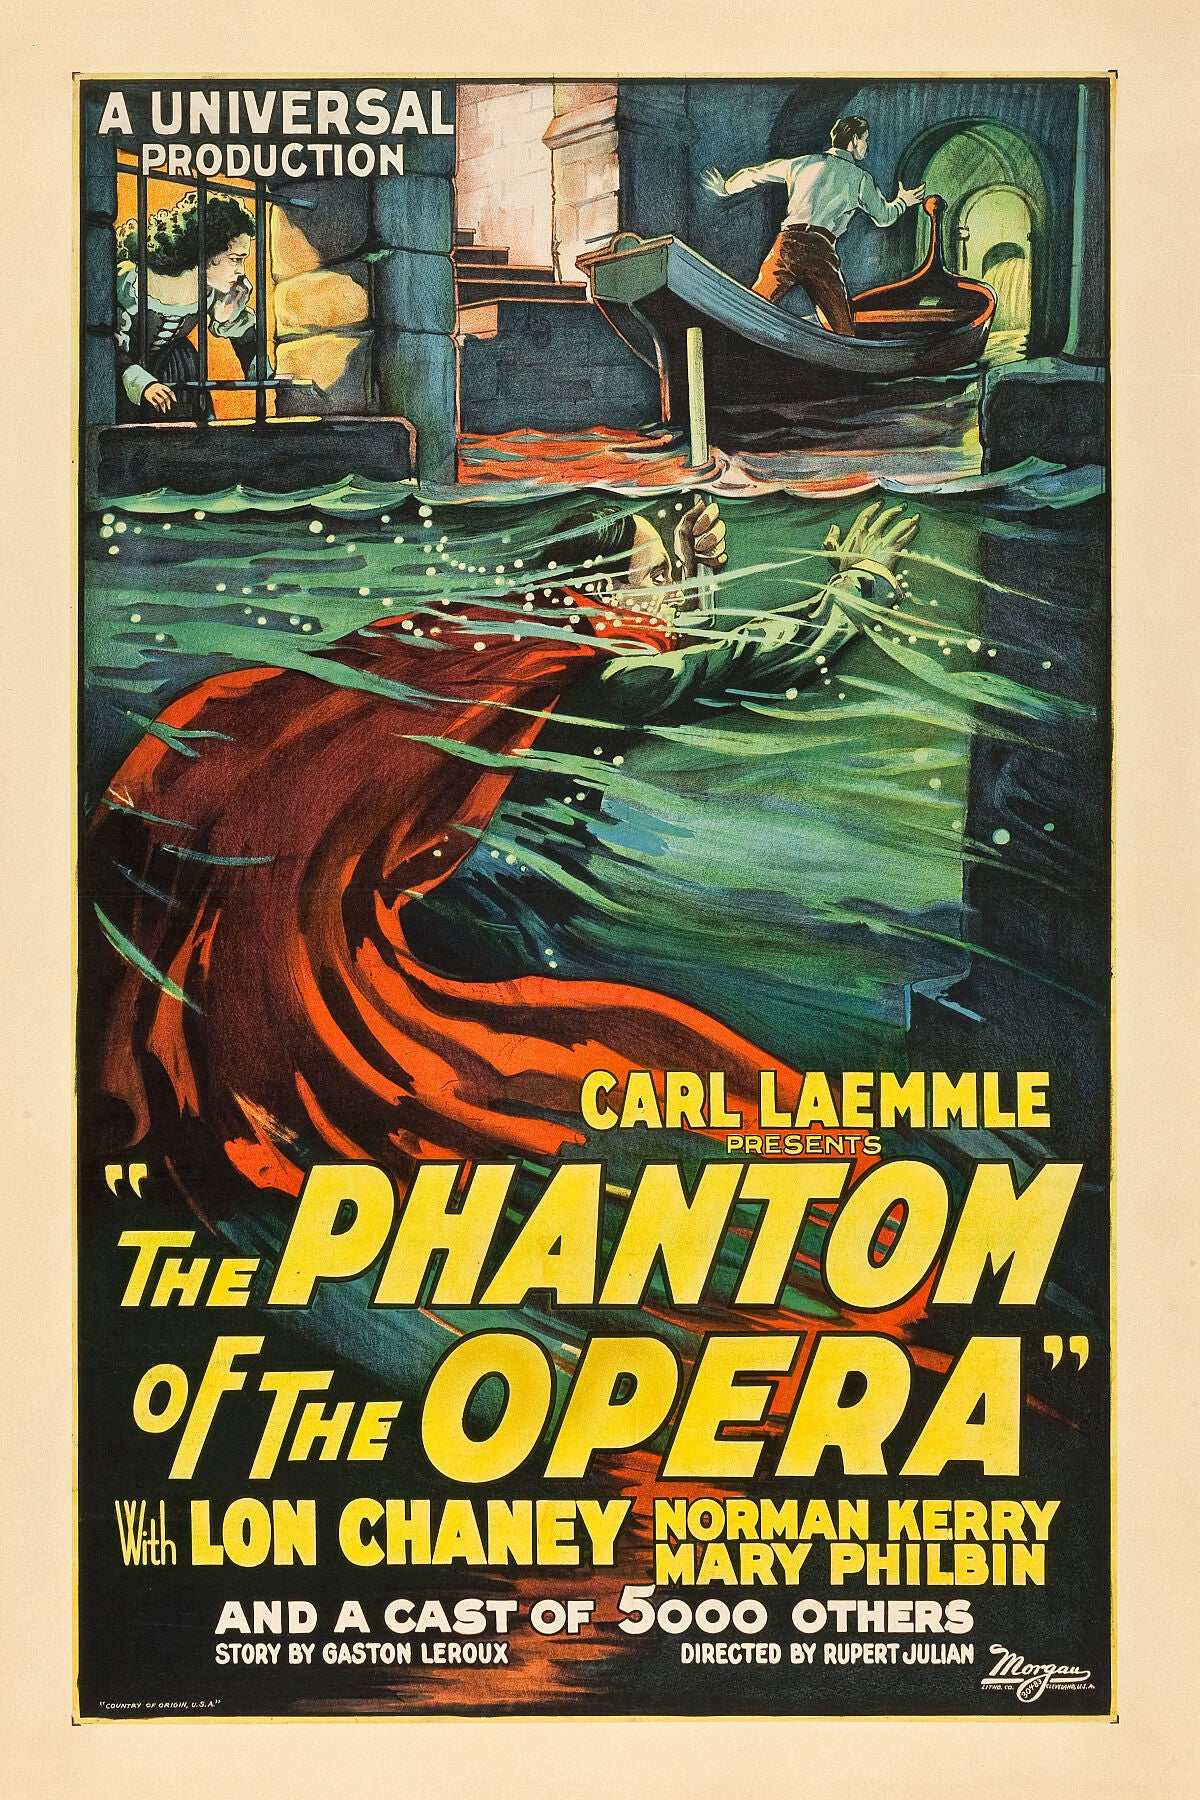 Poster advertising The Phantom of the Opera, 1925.